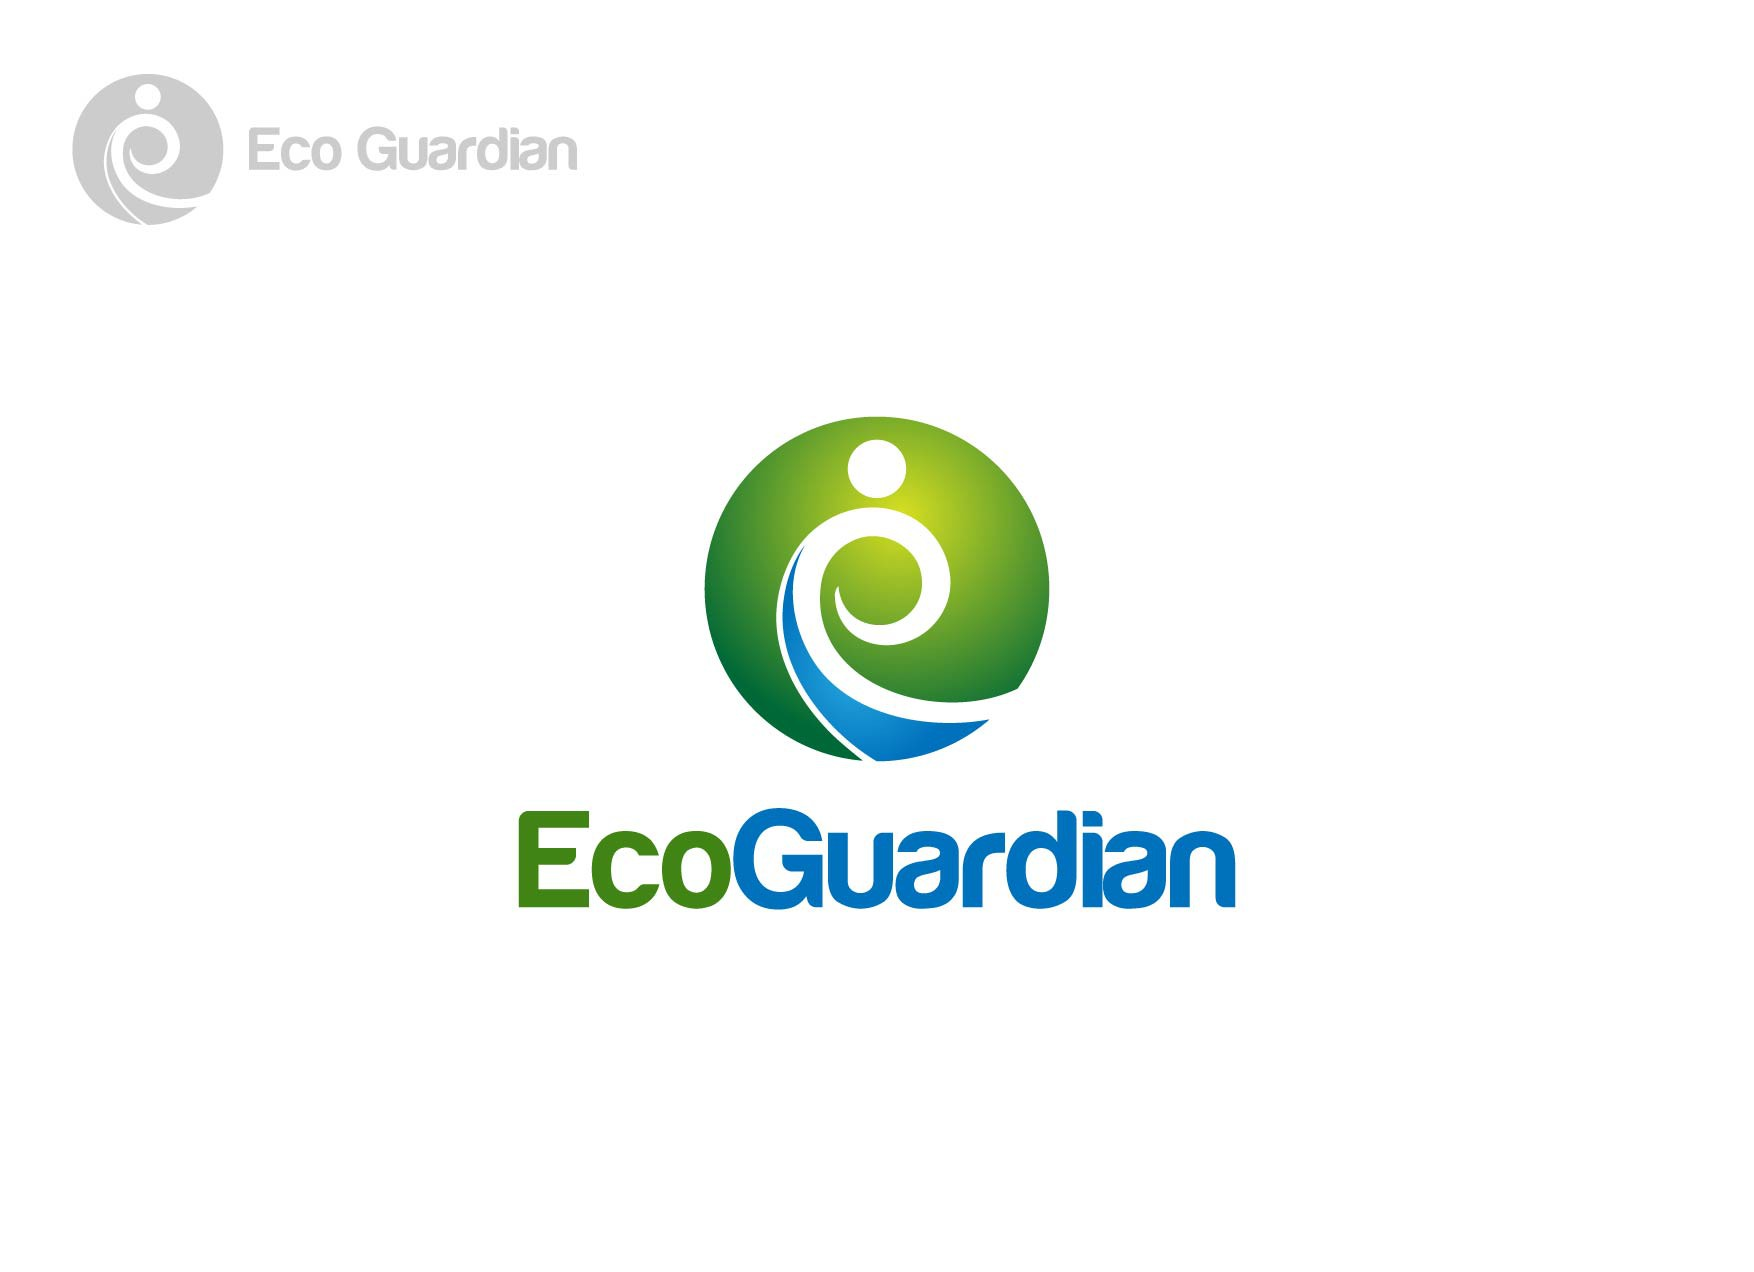 New logo wanted for Eco Guardian